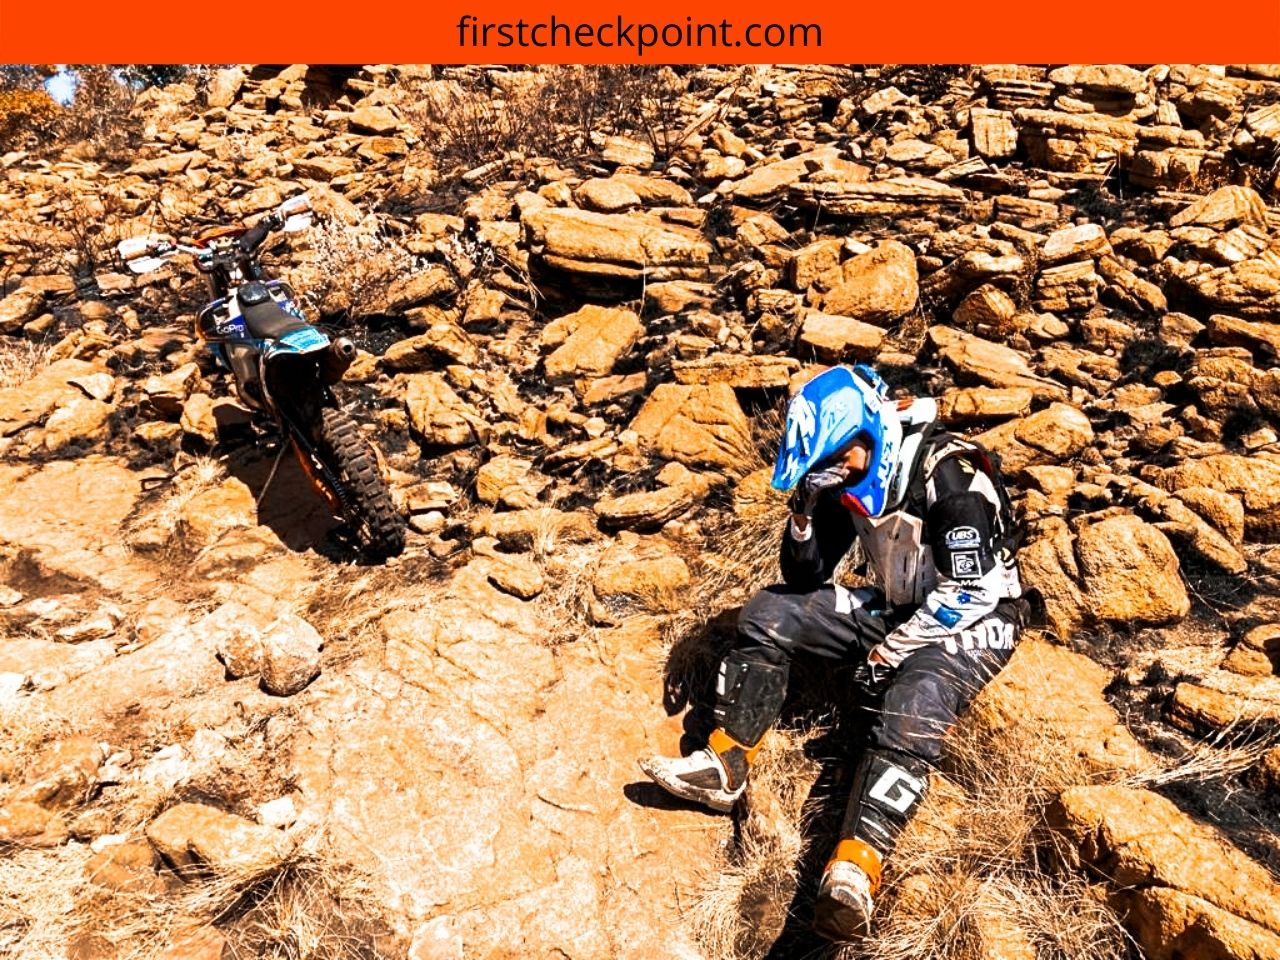 how to break in a dirt bike engine First Checkpoint